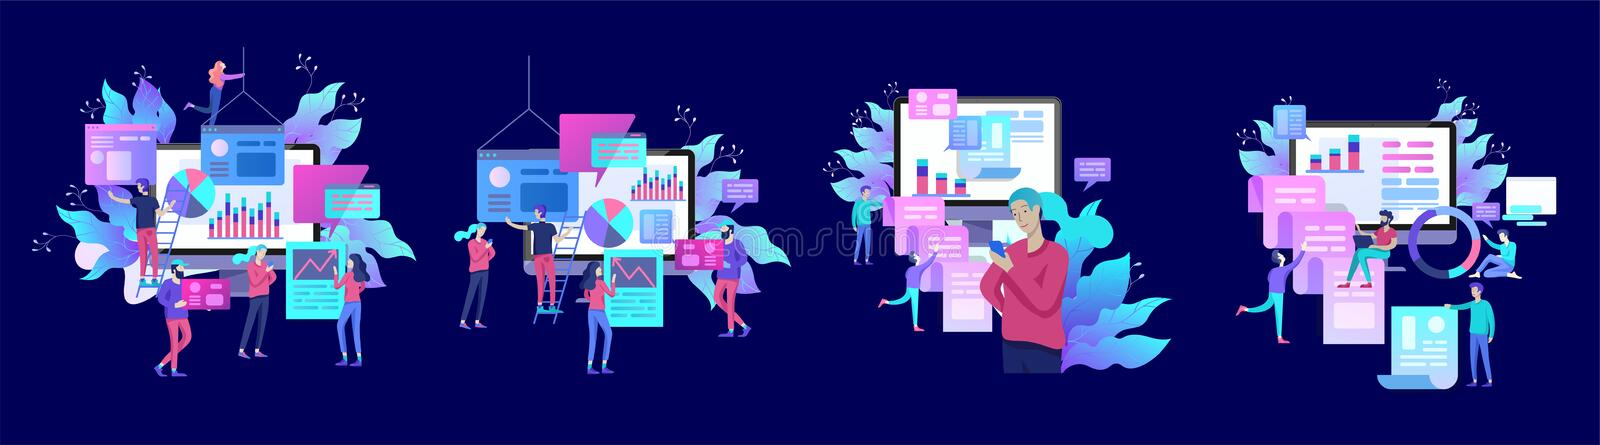 Concept illustration of business, office workers analysis of the evolutionary scale, SEO, market research Web site. Coding, internet search optimization stock illustration